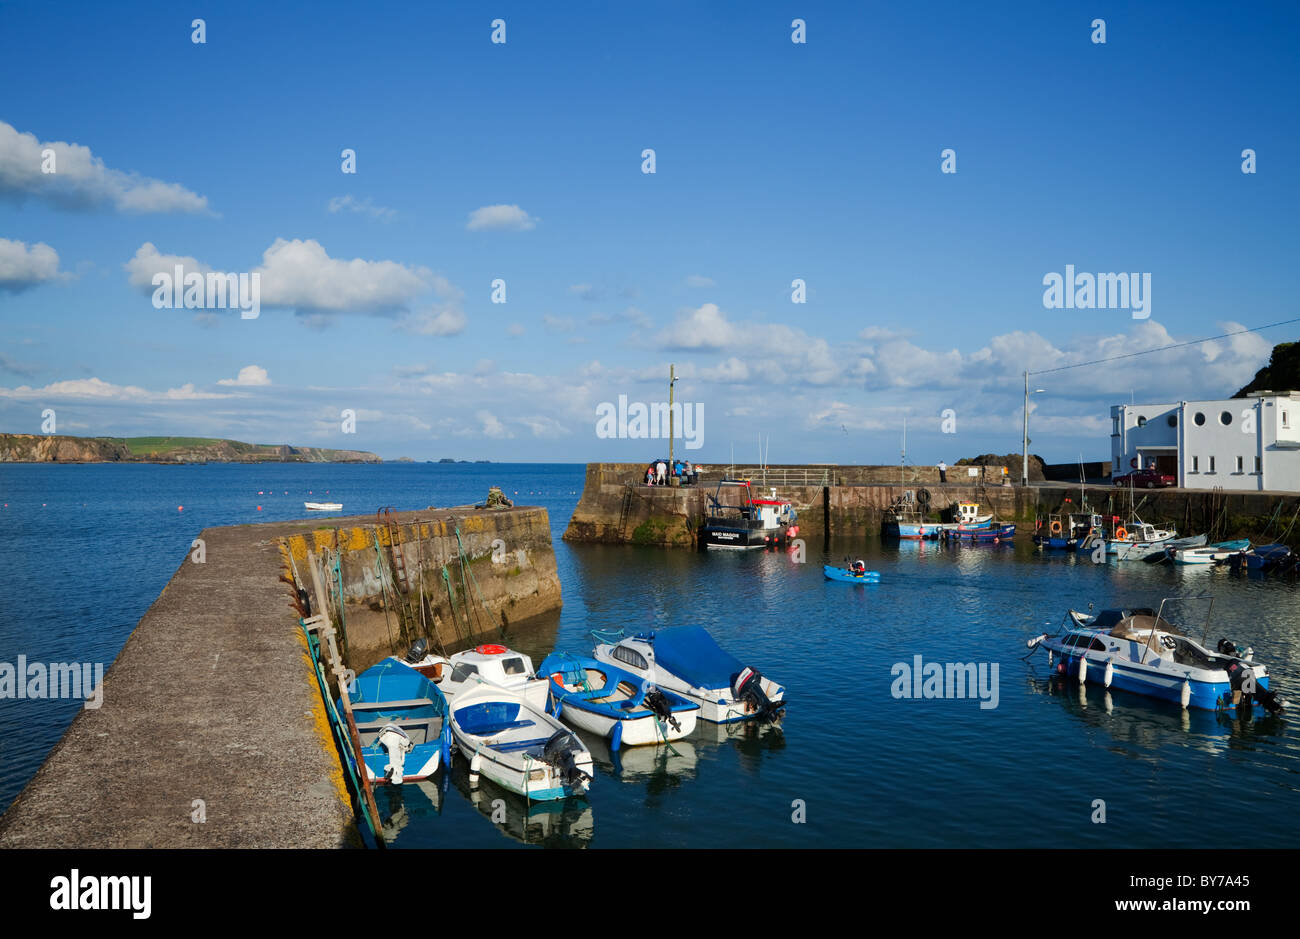 Boatstrand Harbour, The Copper Coast Geopark, County Waterford, Ireland - Stock Image